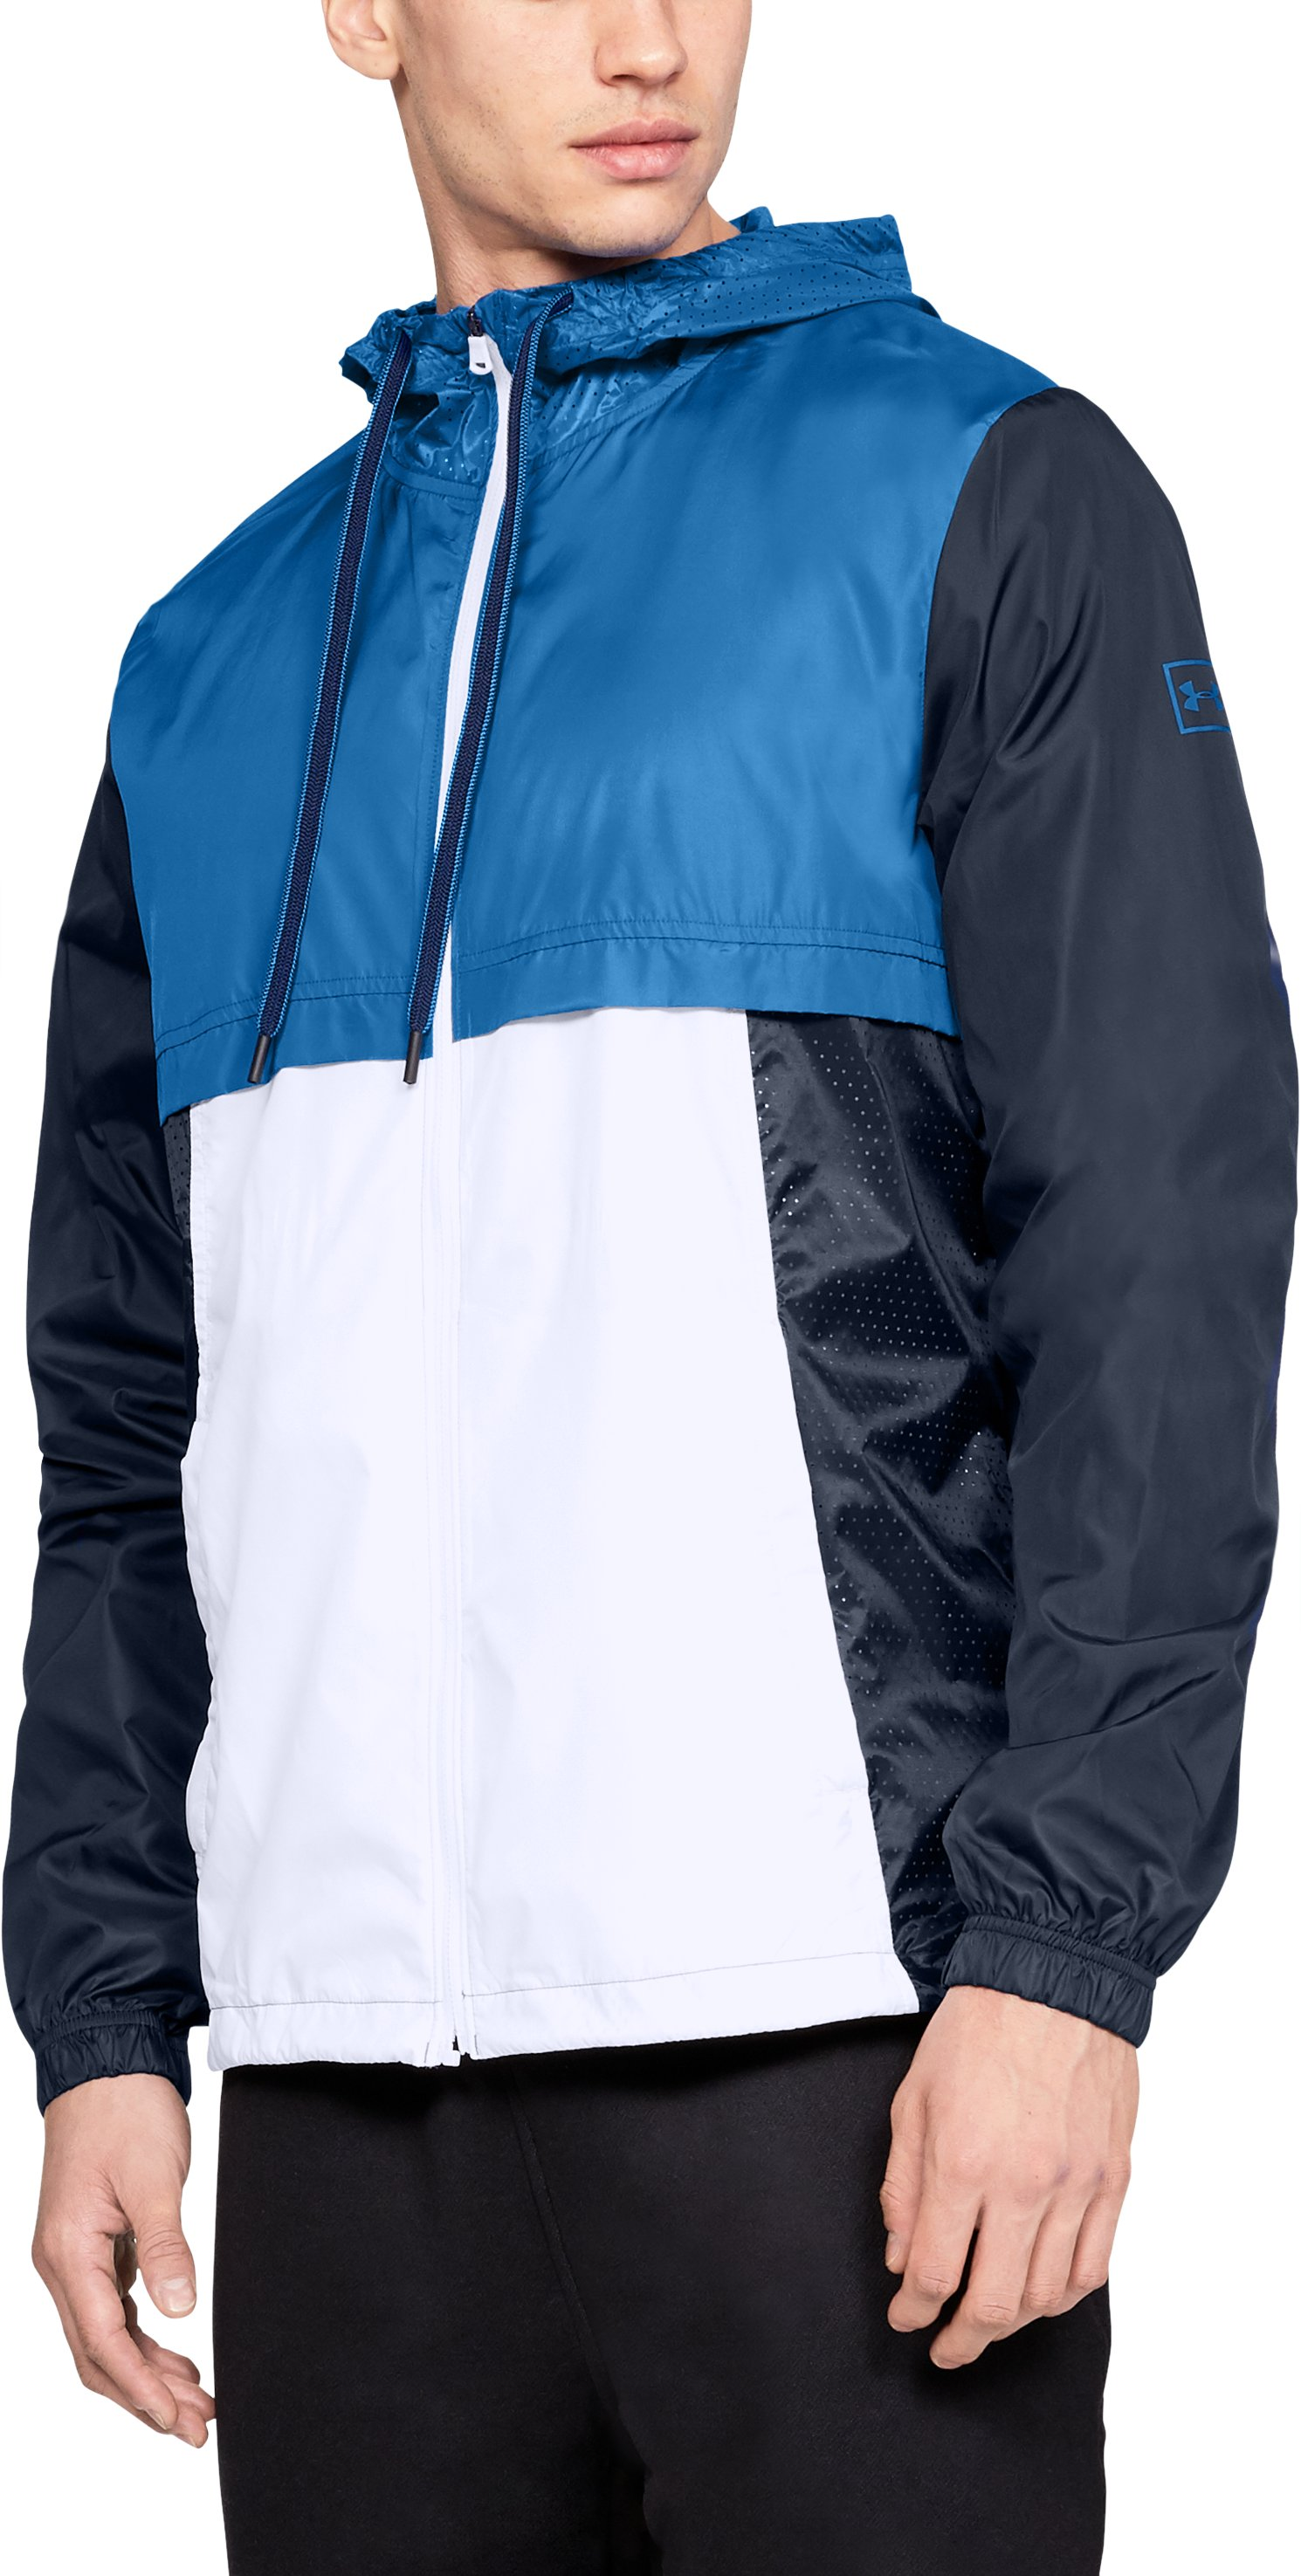 Men's UA Sportstyle Windbreaker Jacket 4 Colors $48.00 - $60.99